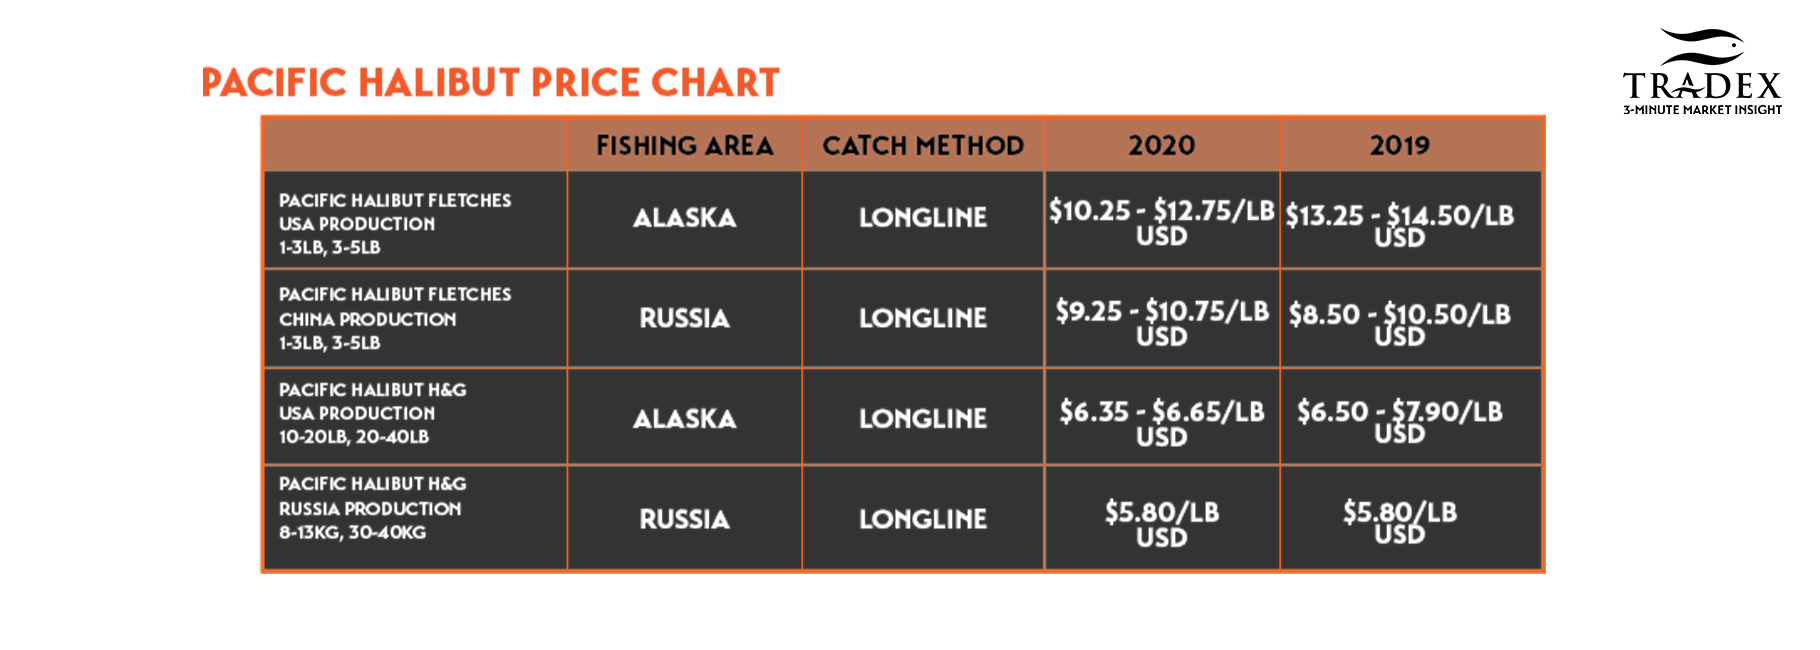 Pacific Halibut Price Chart